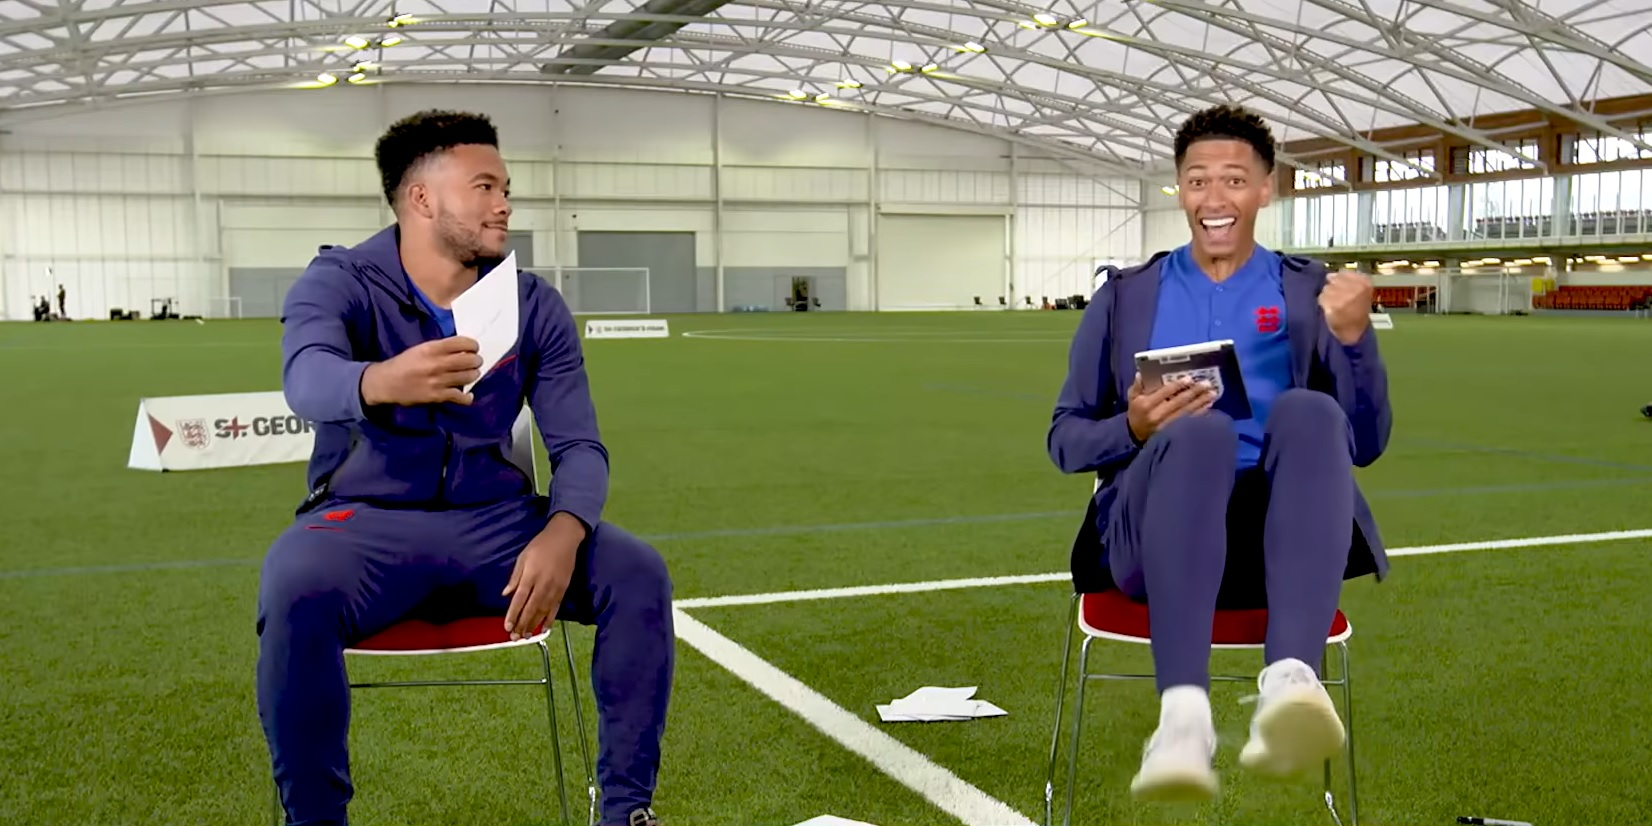 (Video) Bellingham's reaction to Reece James' guess he'd rather swap shirts with Lampard over Gerrard: 'It's Stevie G, bro'